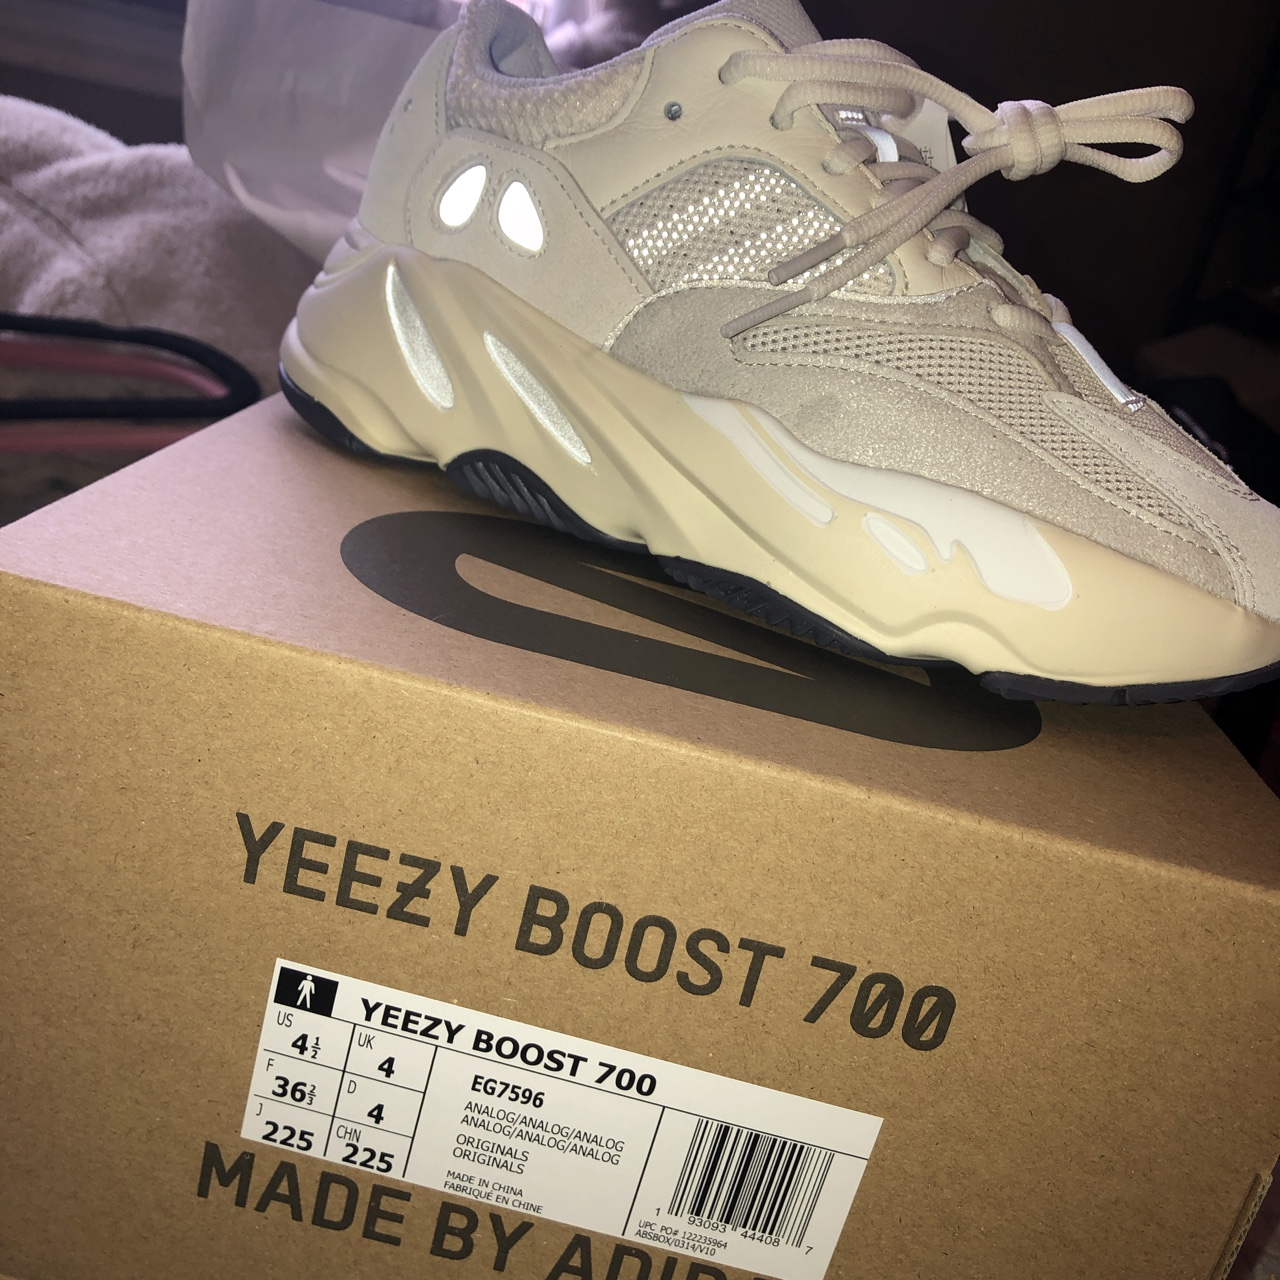 new product 1a45f e286b Yeezy Boost 700 Analog US size 4.5 in men so about 6 ...